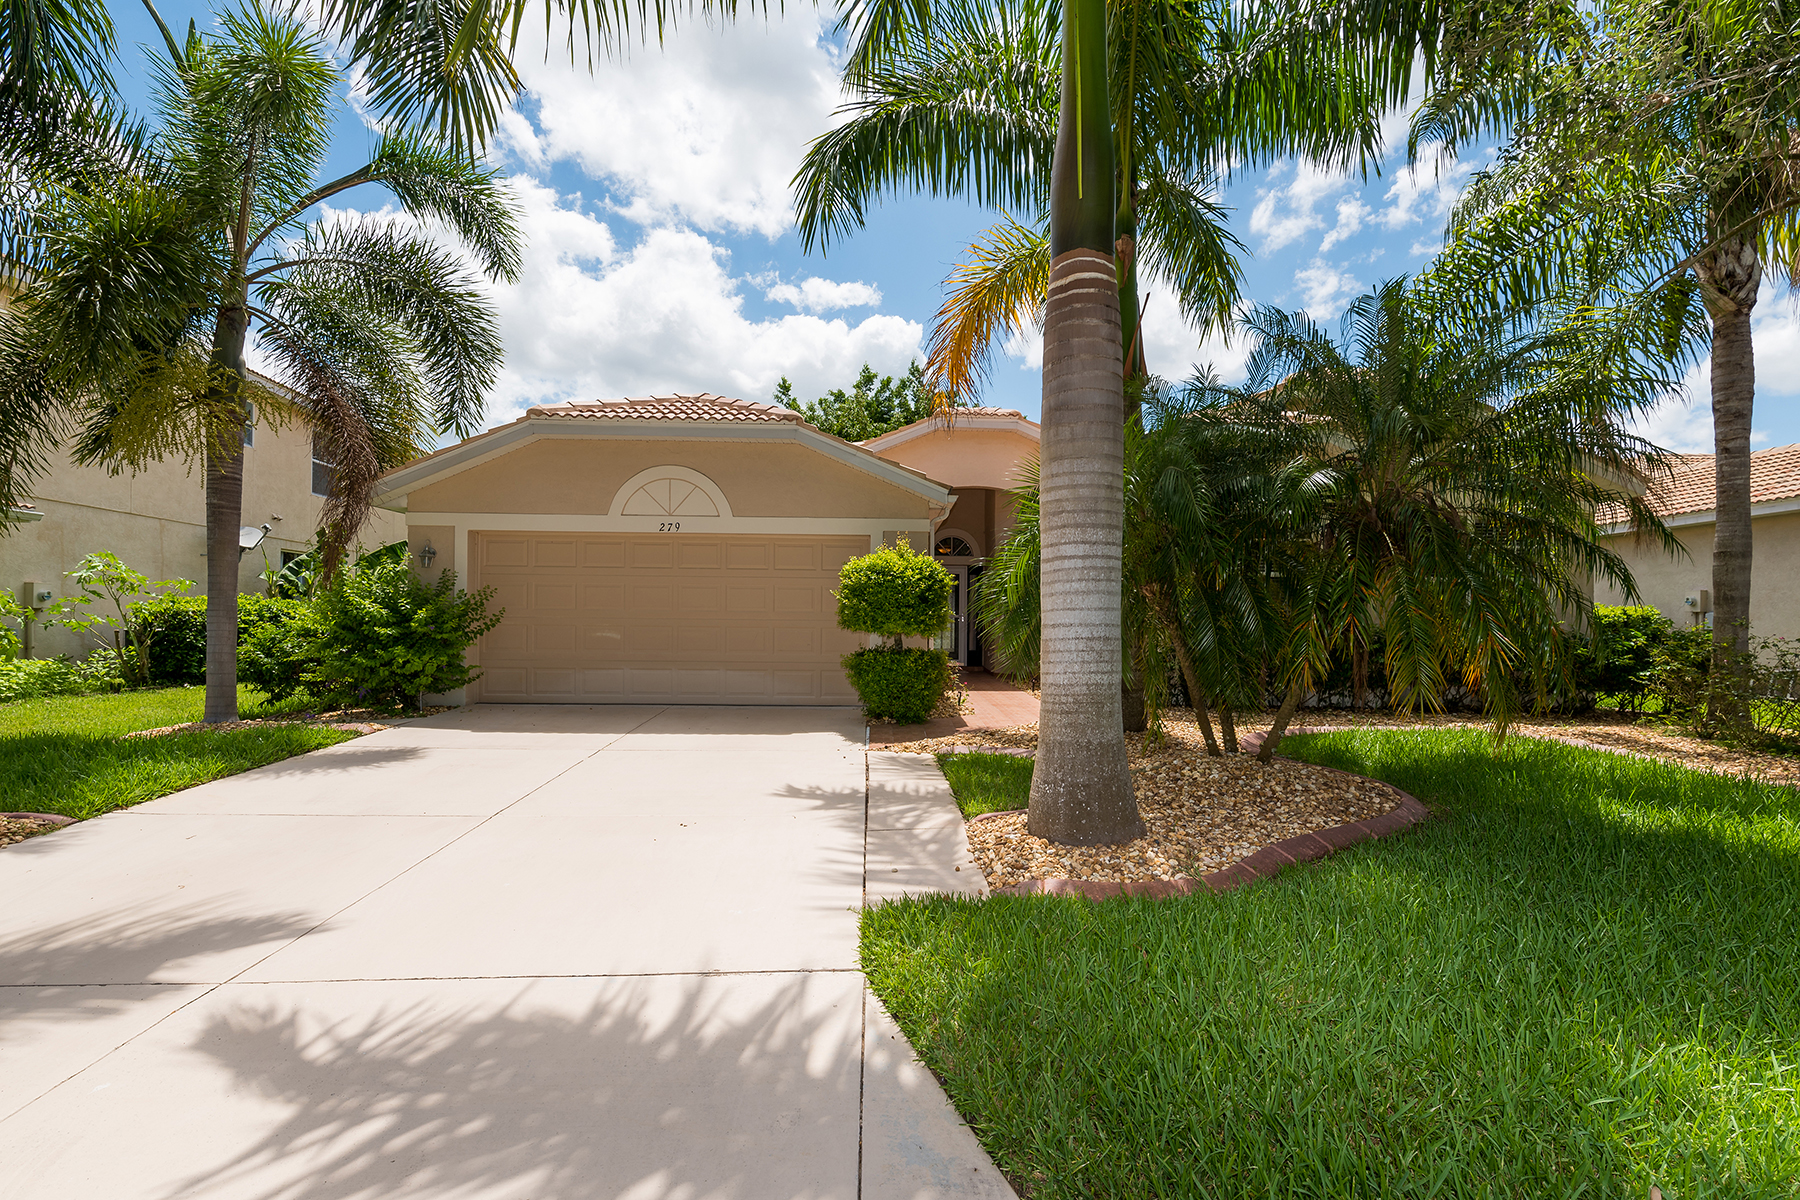 Single Family Home for Sale at STONEYBROOK AT HERITAGE HARBOR 279 Heritage Isles Way Bradenton, Florida, 34212 United States